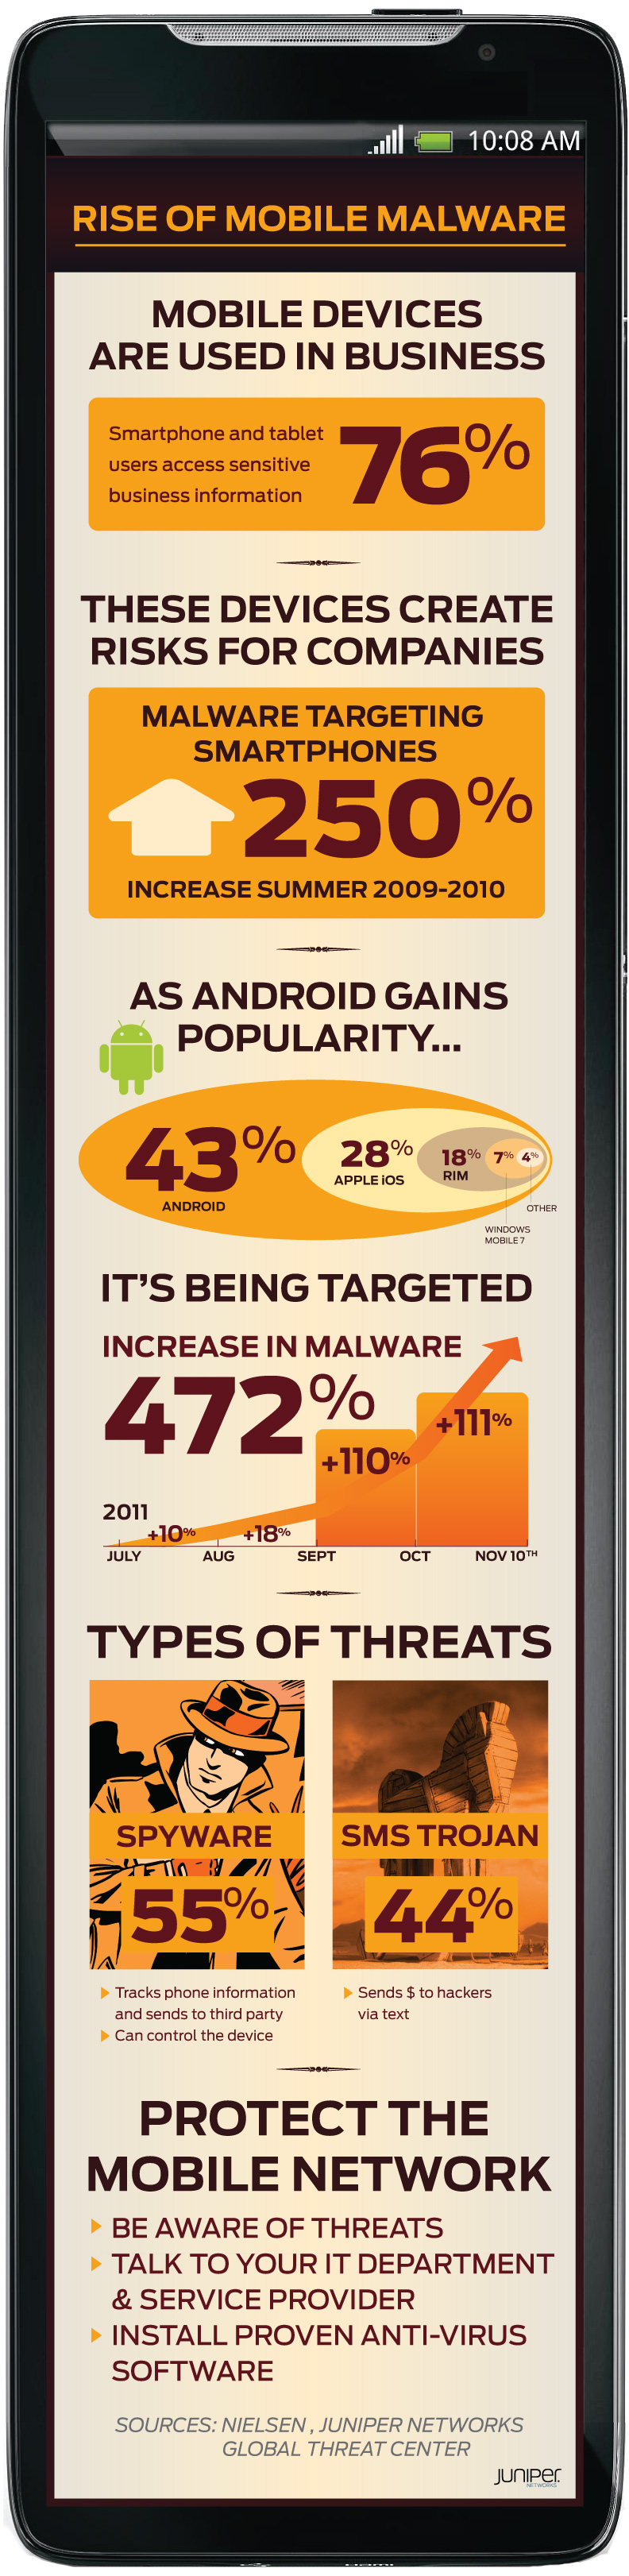 Juniper Networks Global Threat Center Mobile Malware Report